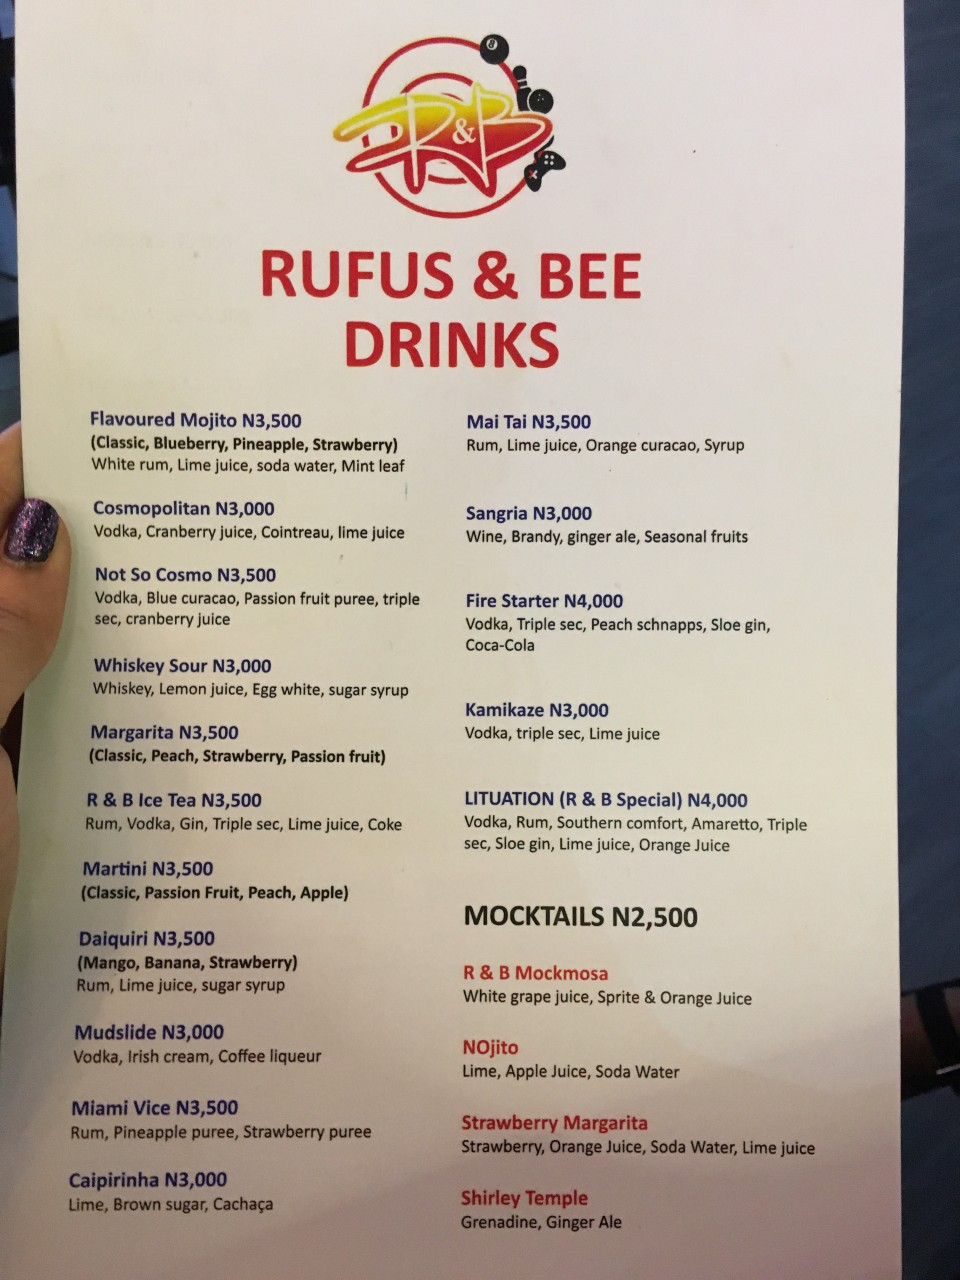 Rufus and Bee Lekki Menu